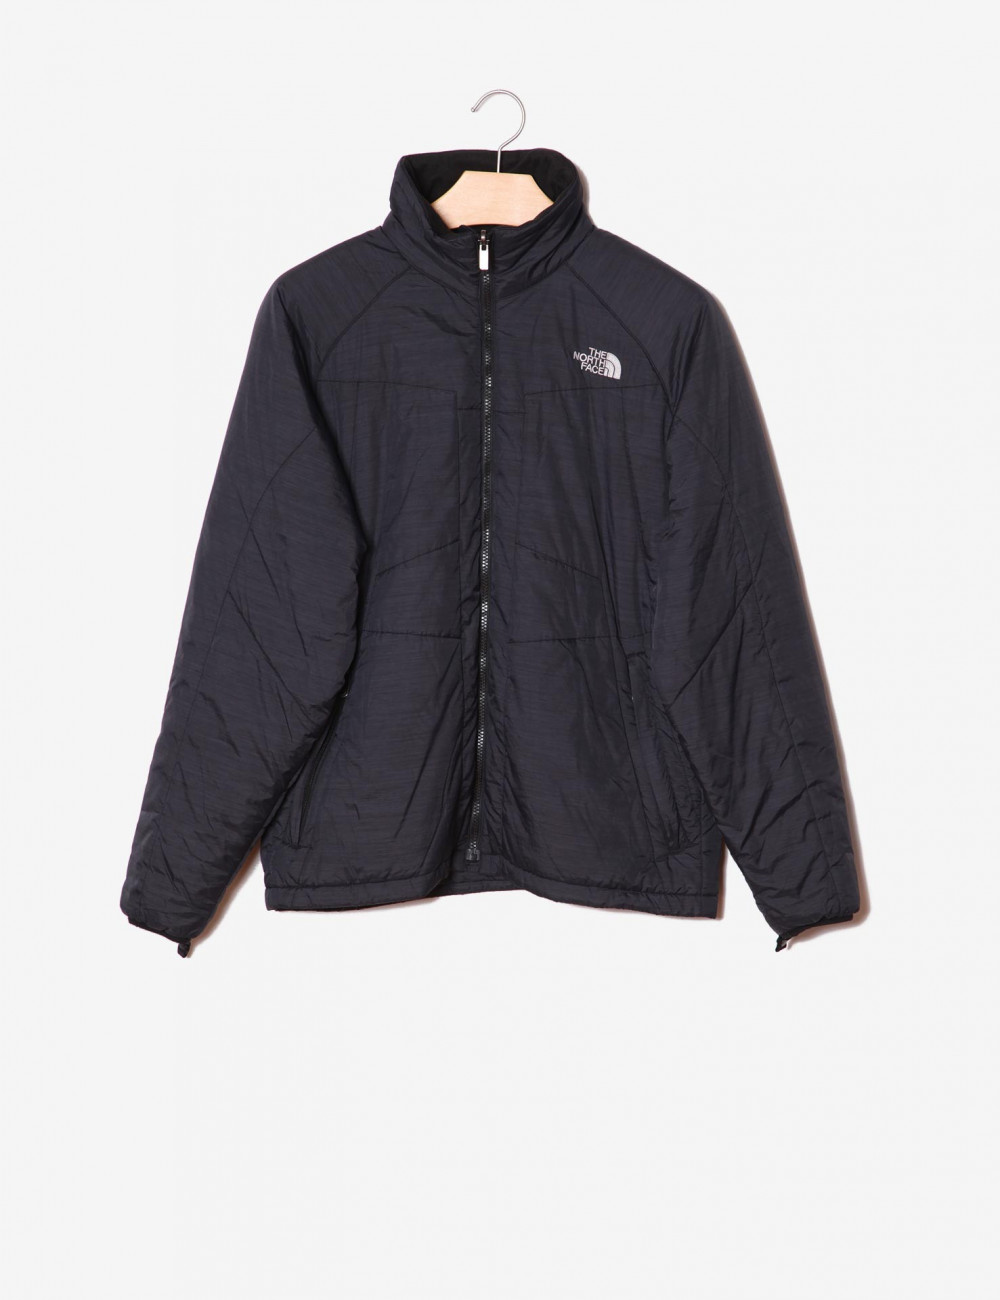 Giacca vento con logo-The north face-frontale.jpg